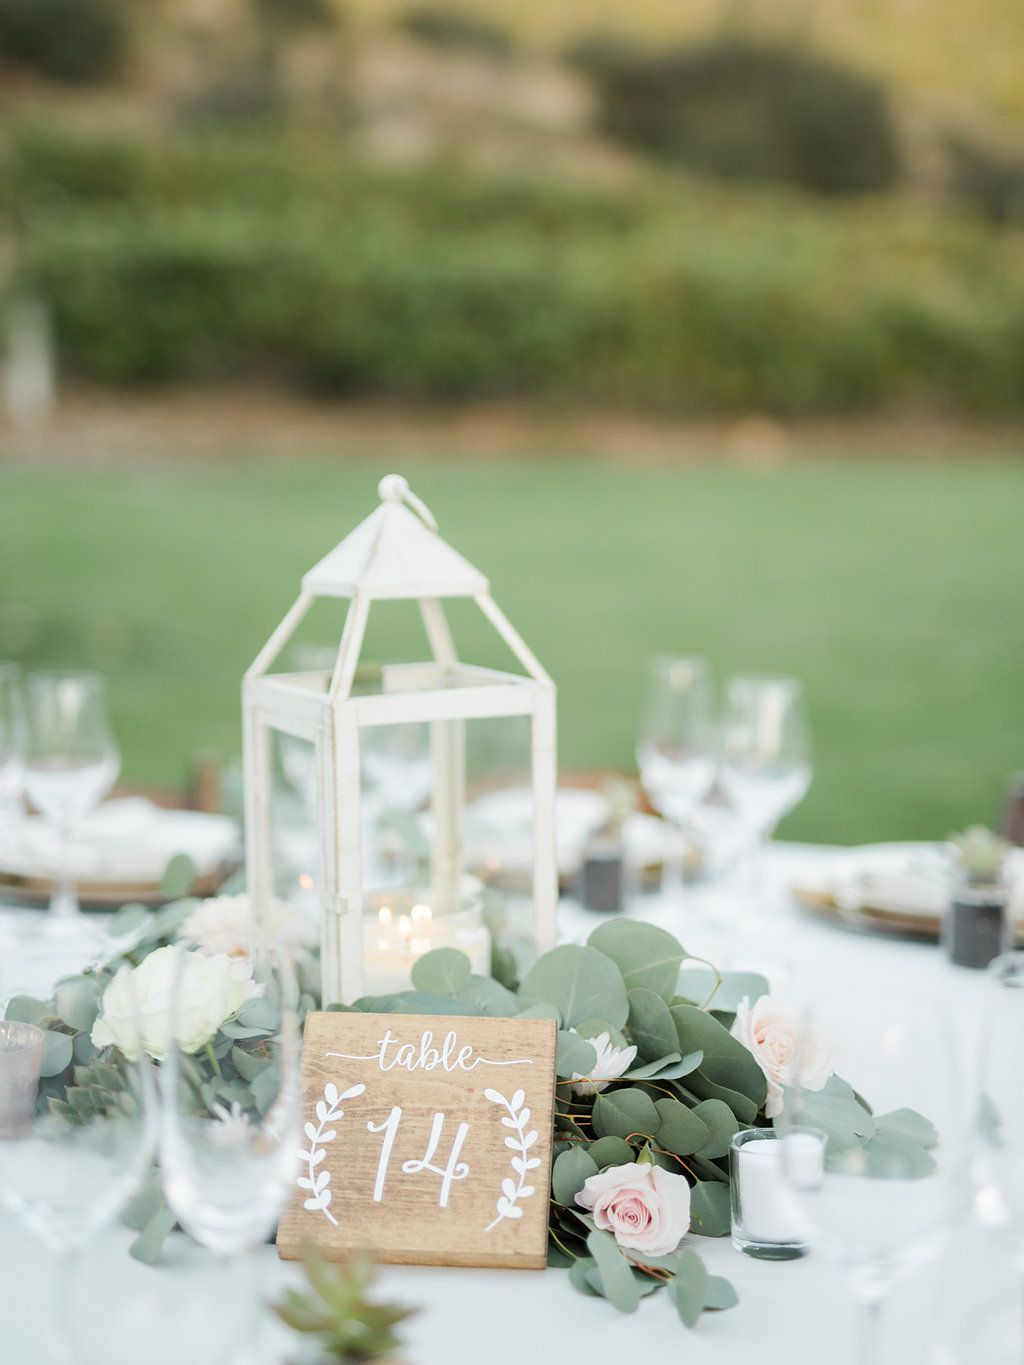 37 Wedding Lantern Centerpiece Ideas – Trendy Wedding Ideas Blog